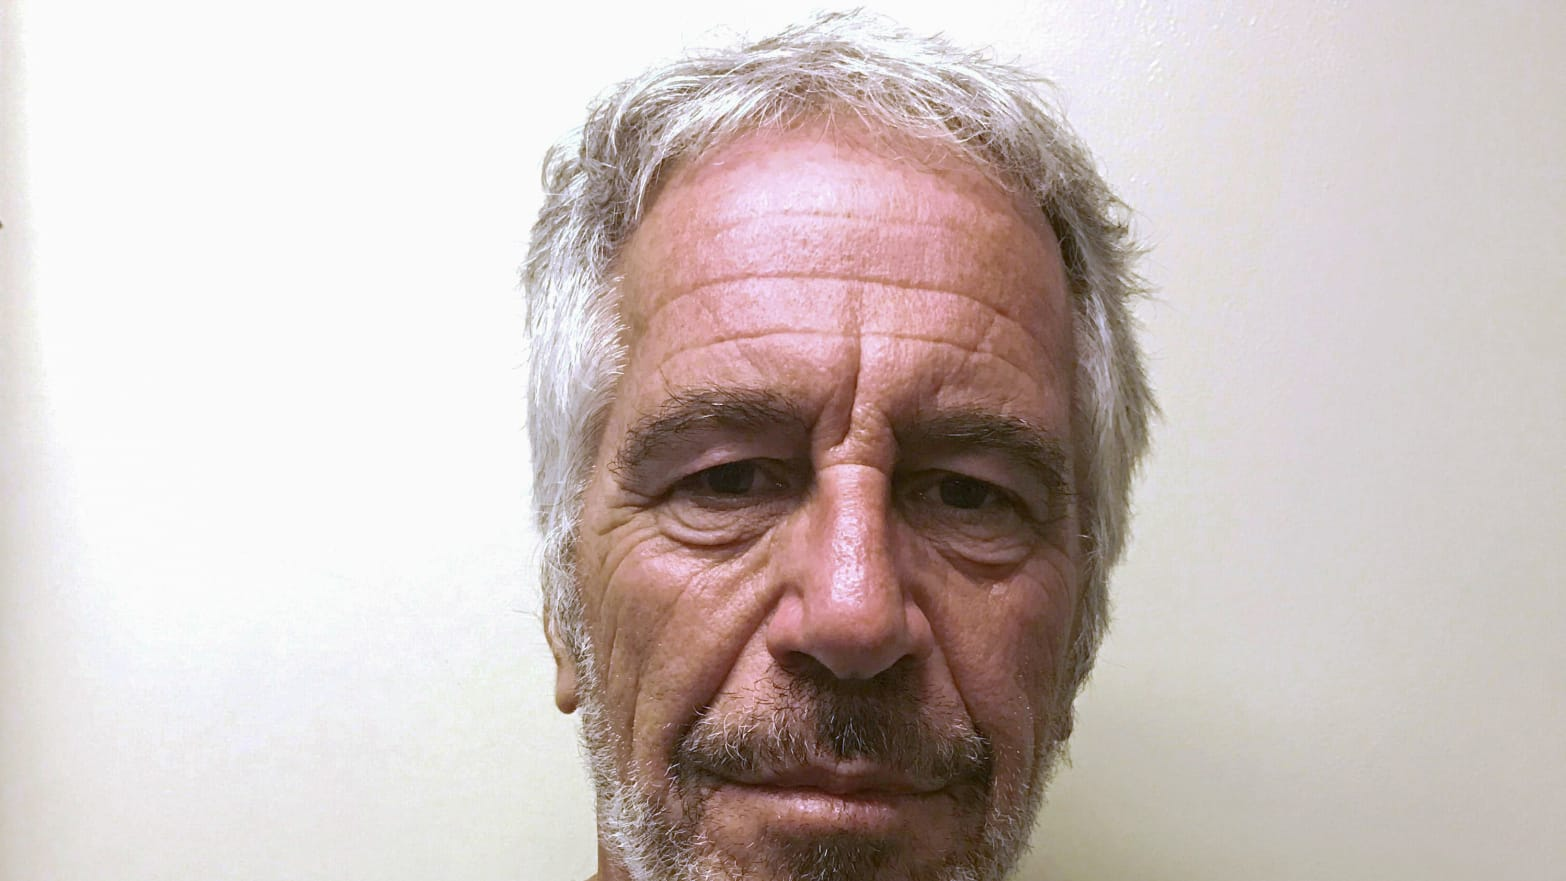 Jeffrey Epstein Is Dead After 'Suicide Watch' and Feds are Scrambling for Answers